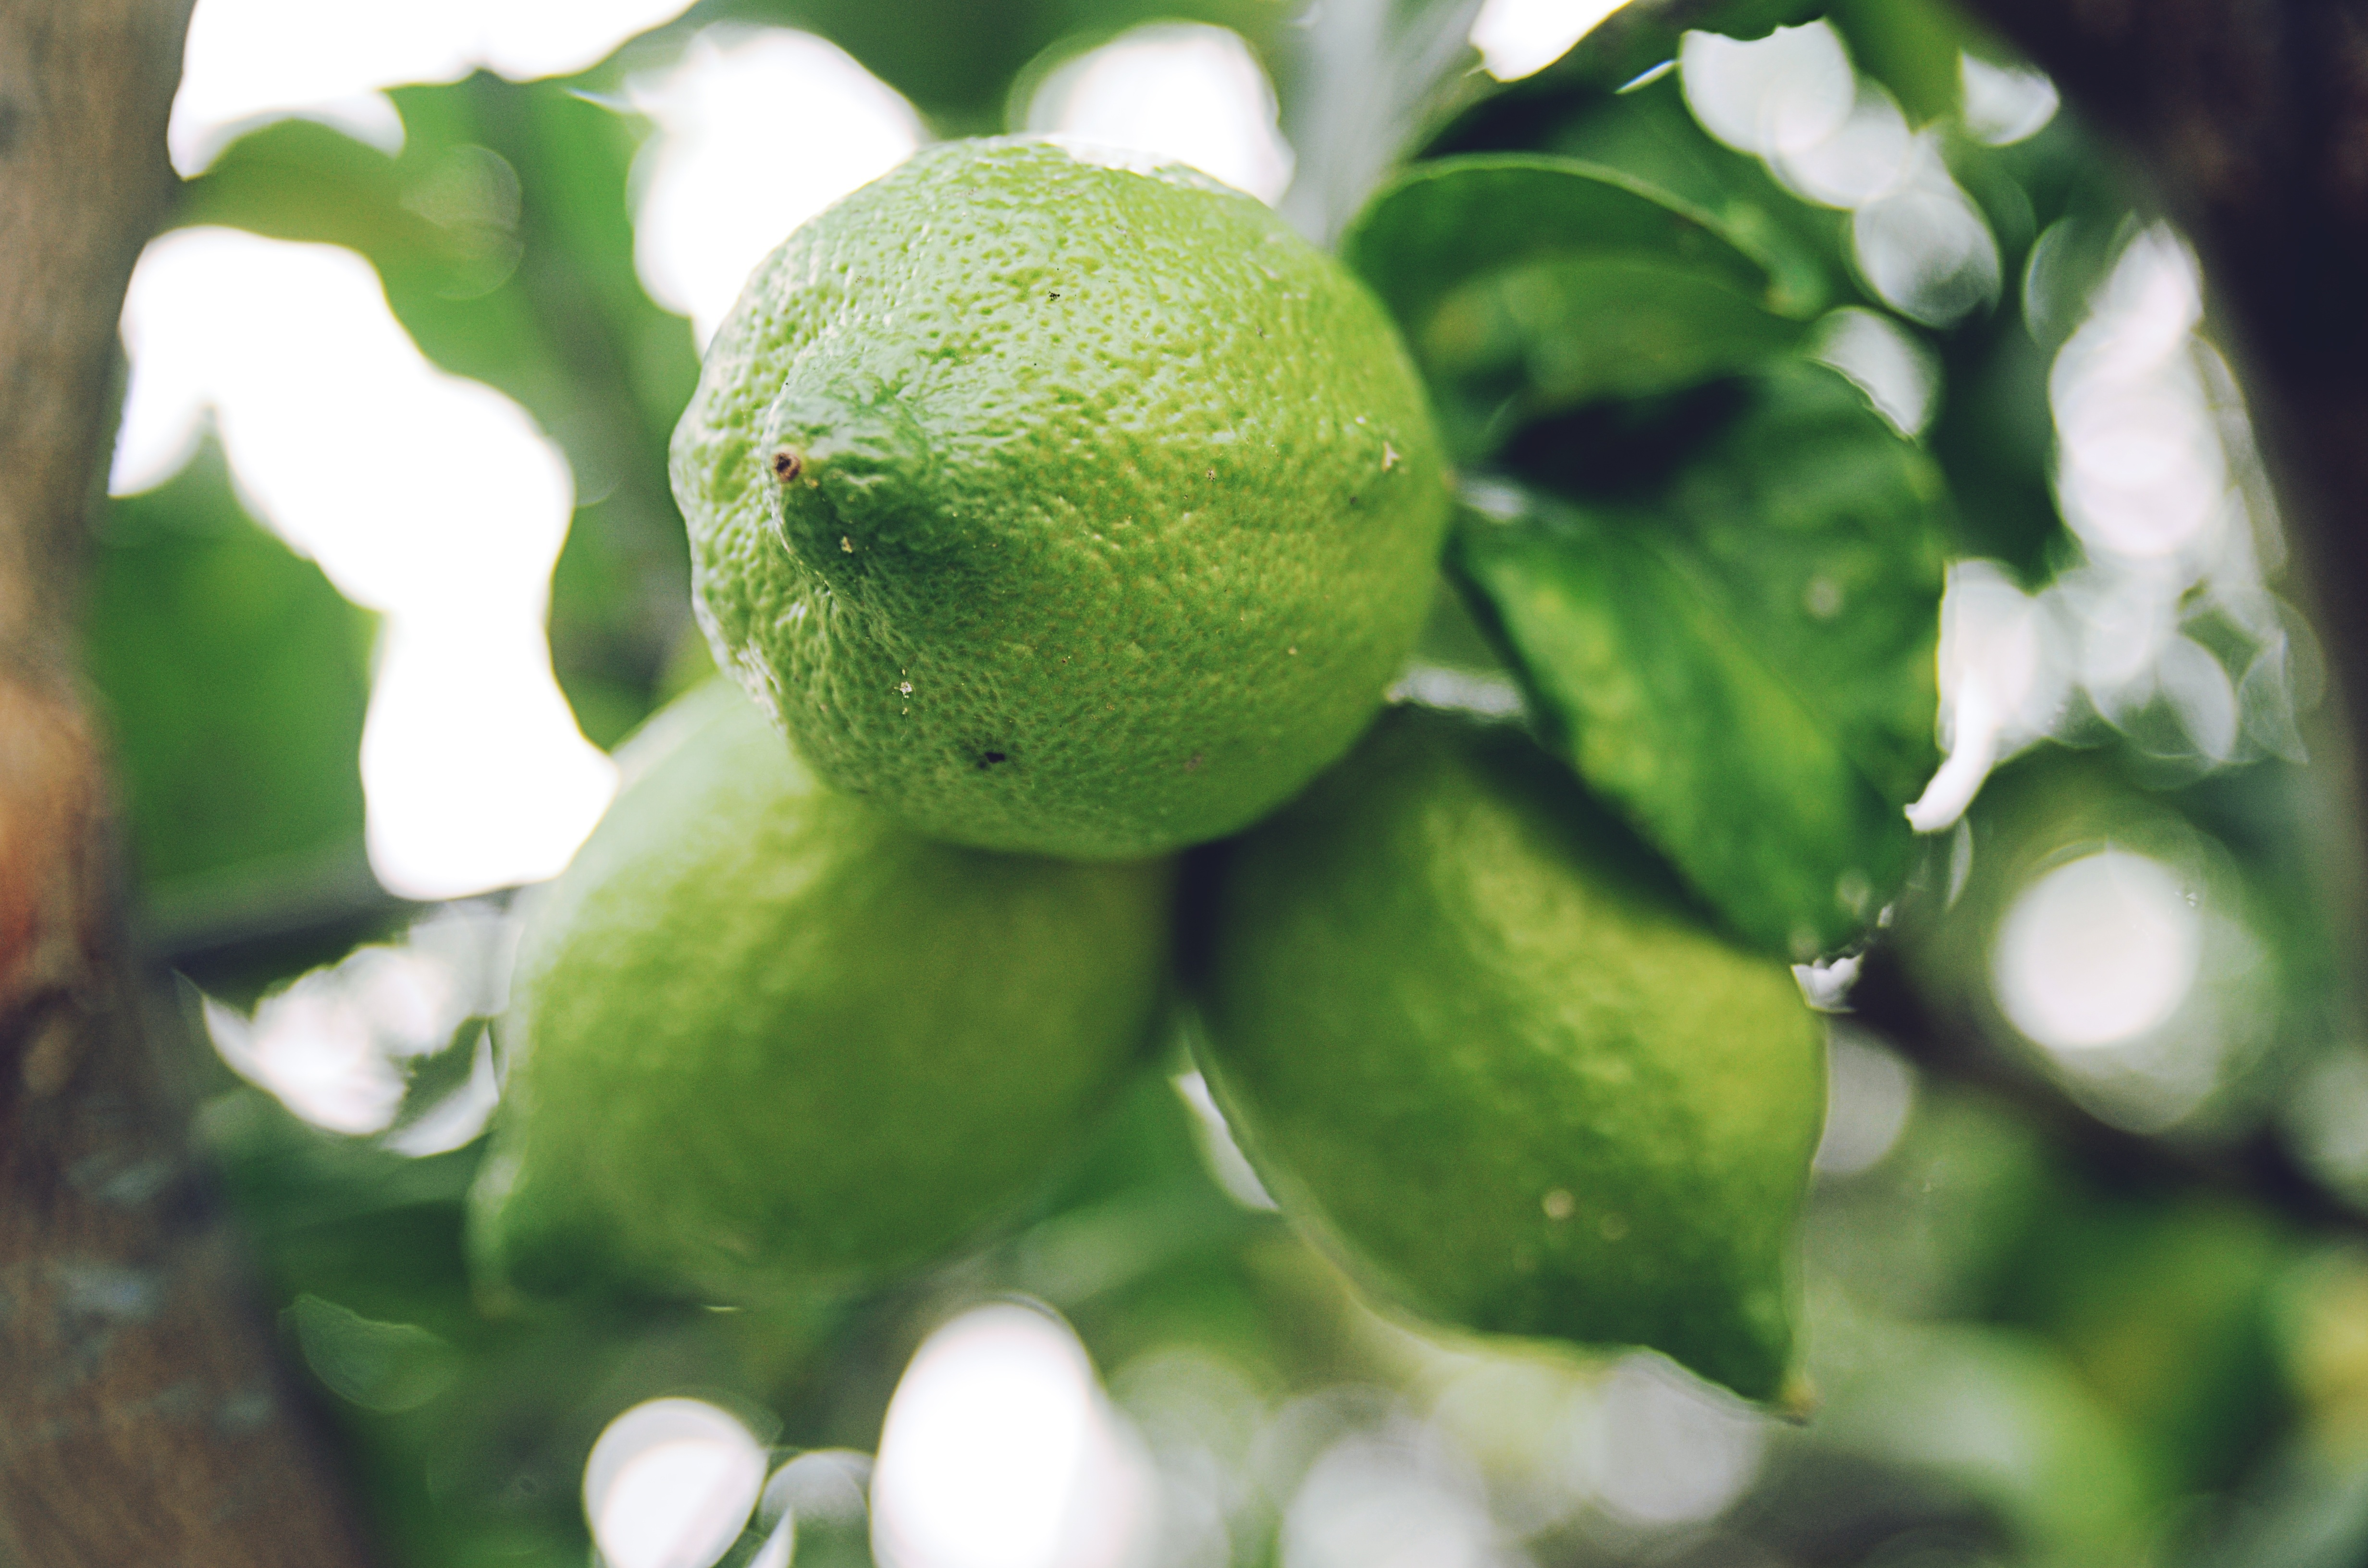 108043 download wallpaper Food, Lime, Branch, Fruit, Citrus screensavers and pictures for free